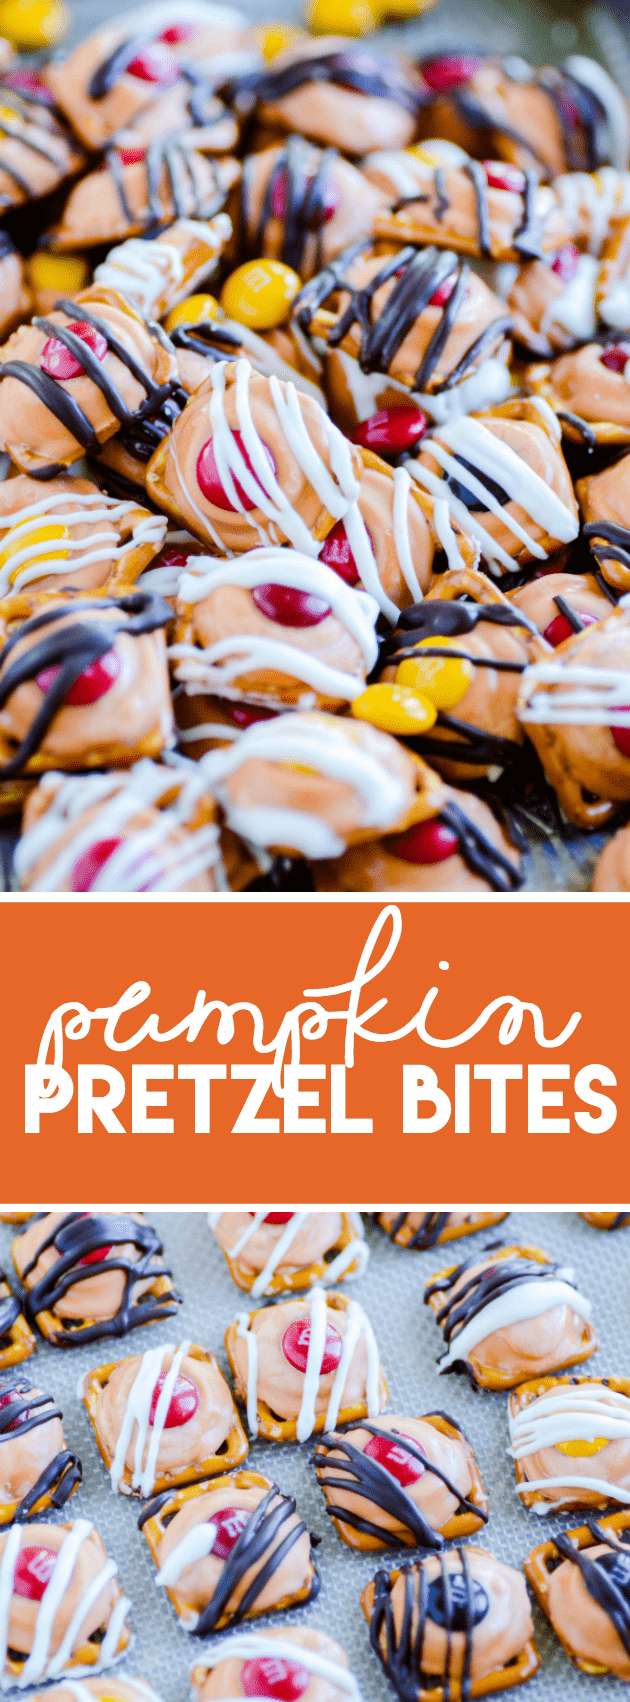 These easy pumpkin pretzel bites are an easy salty + sweet Fall snack that you won't be able to stop munching on!